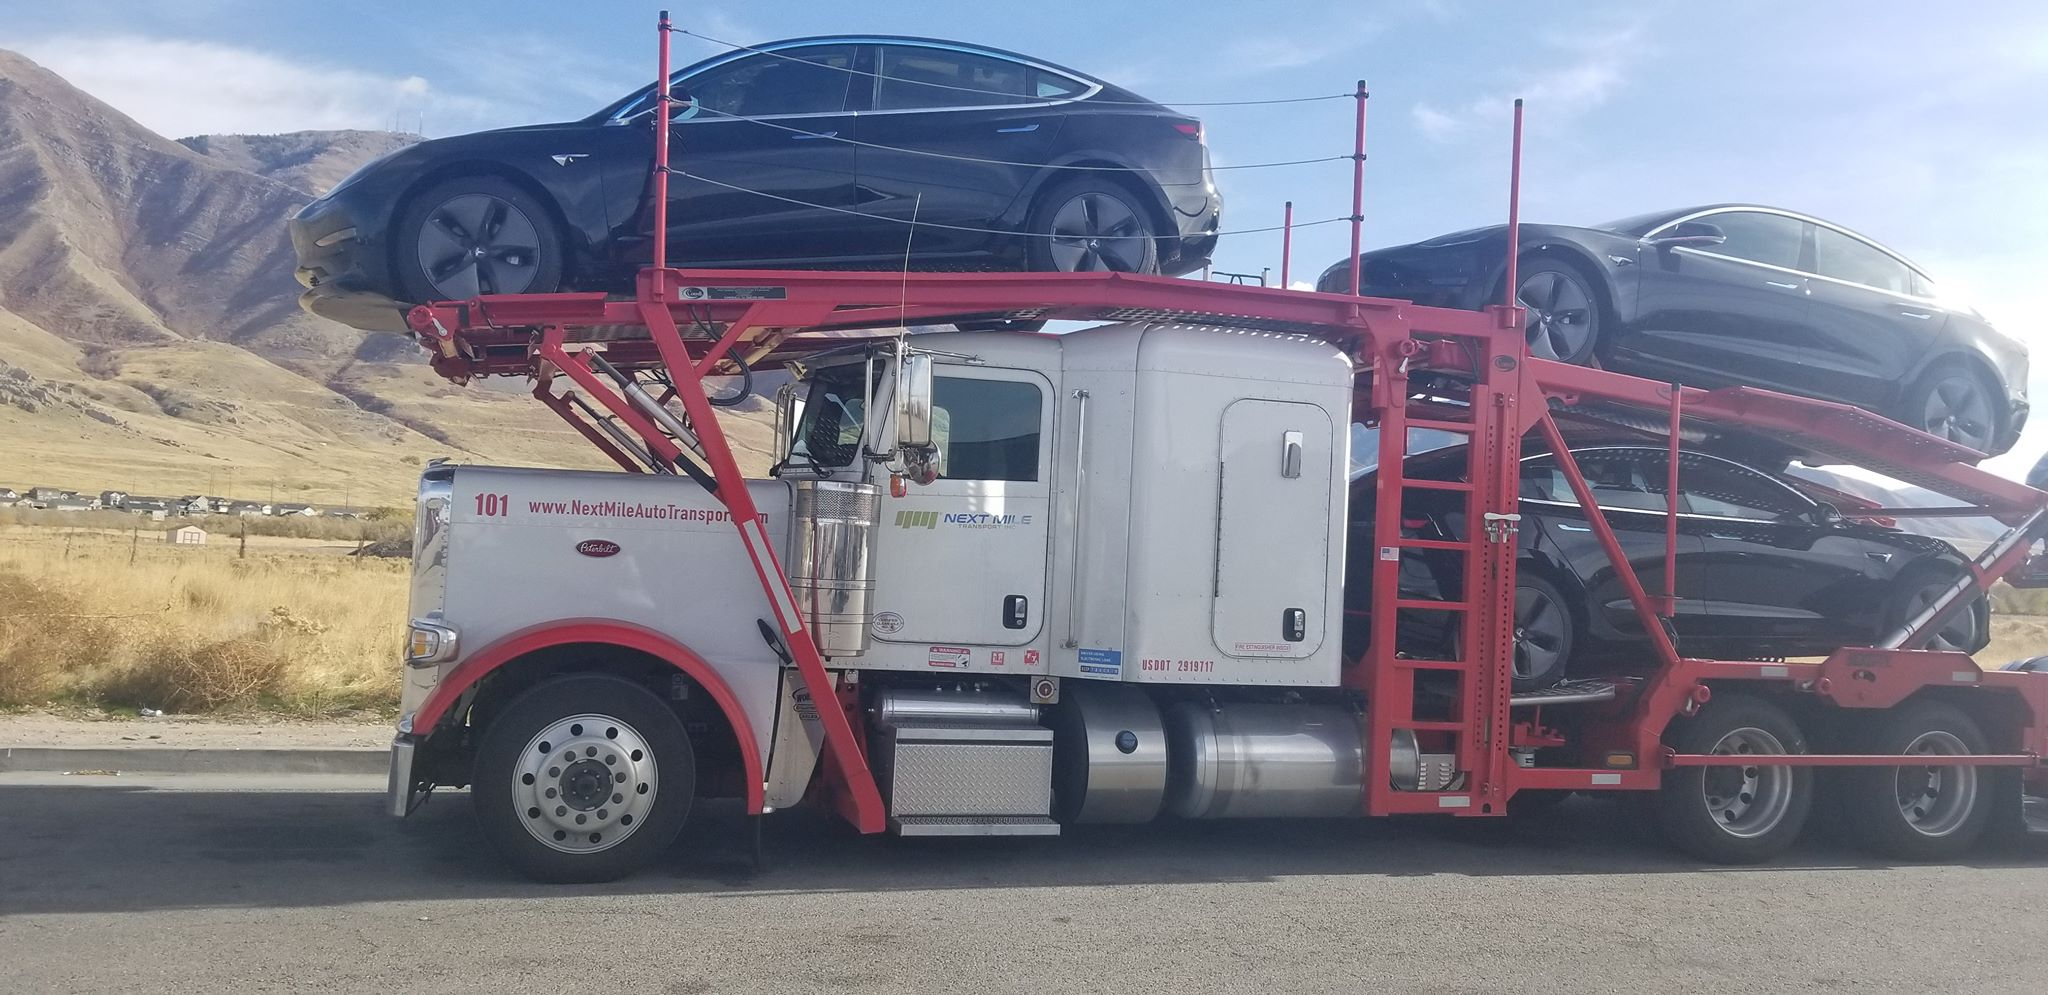 The 9 Main Aspects That Determine Car Shipping Quote Expense | Next Mile Auto Transport Inc